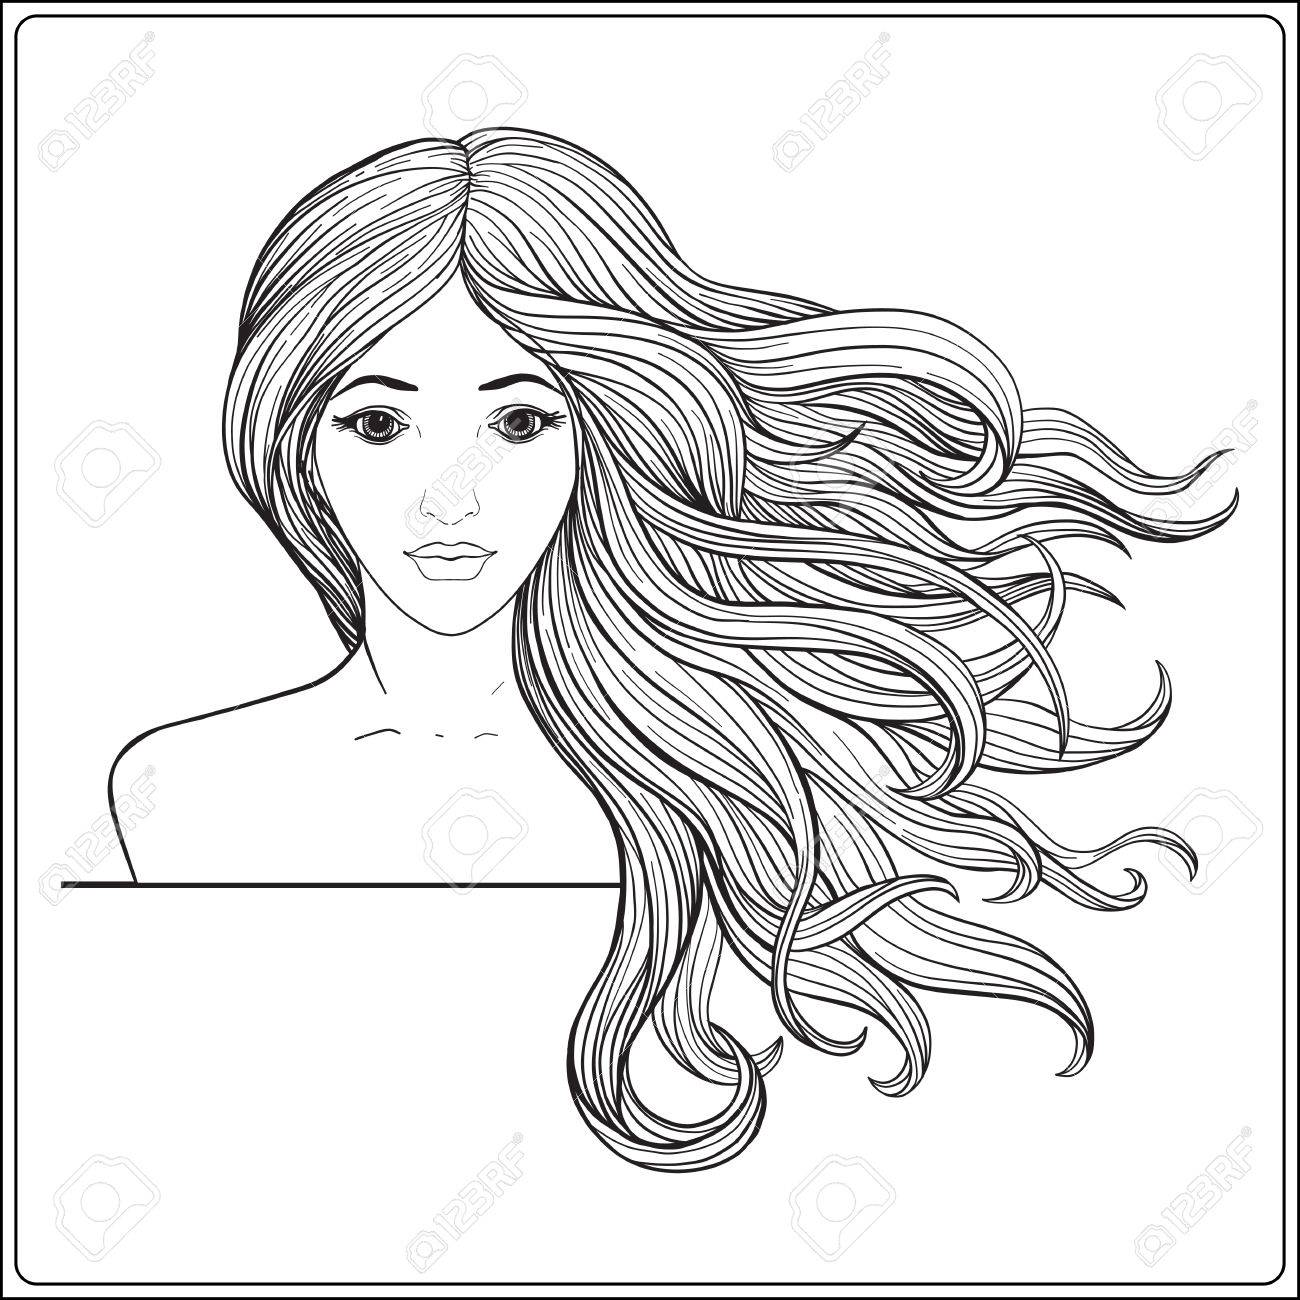 Unique Samson Long Hair Coloring Page Illustration - Examples ...